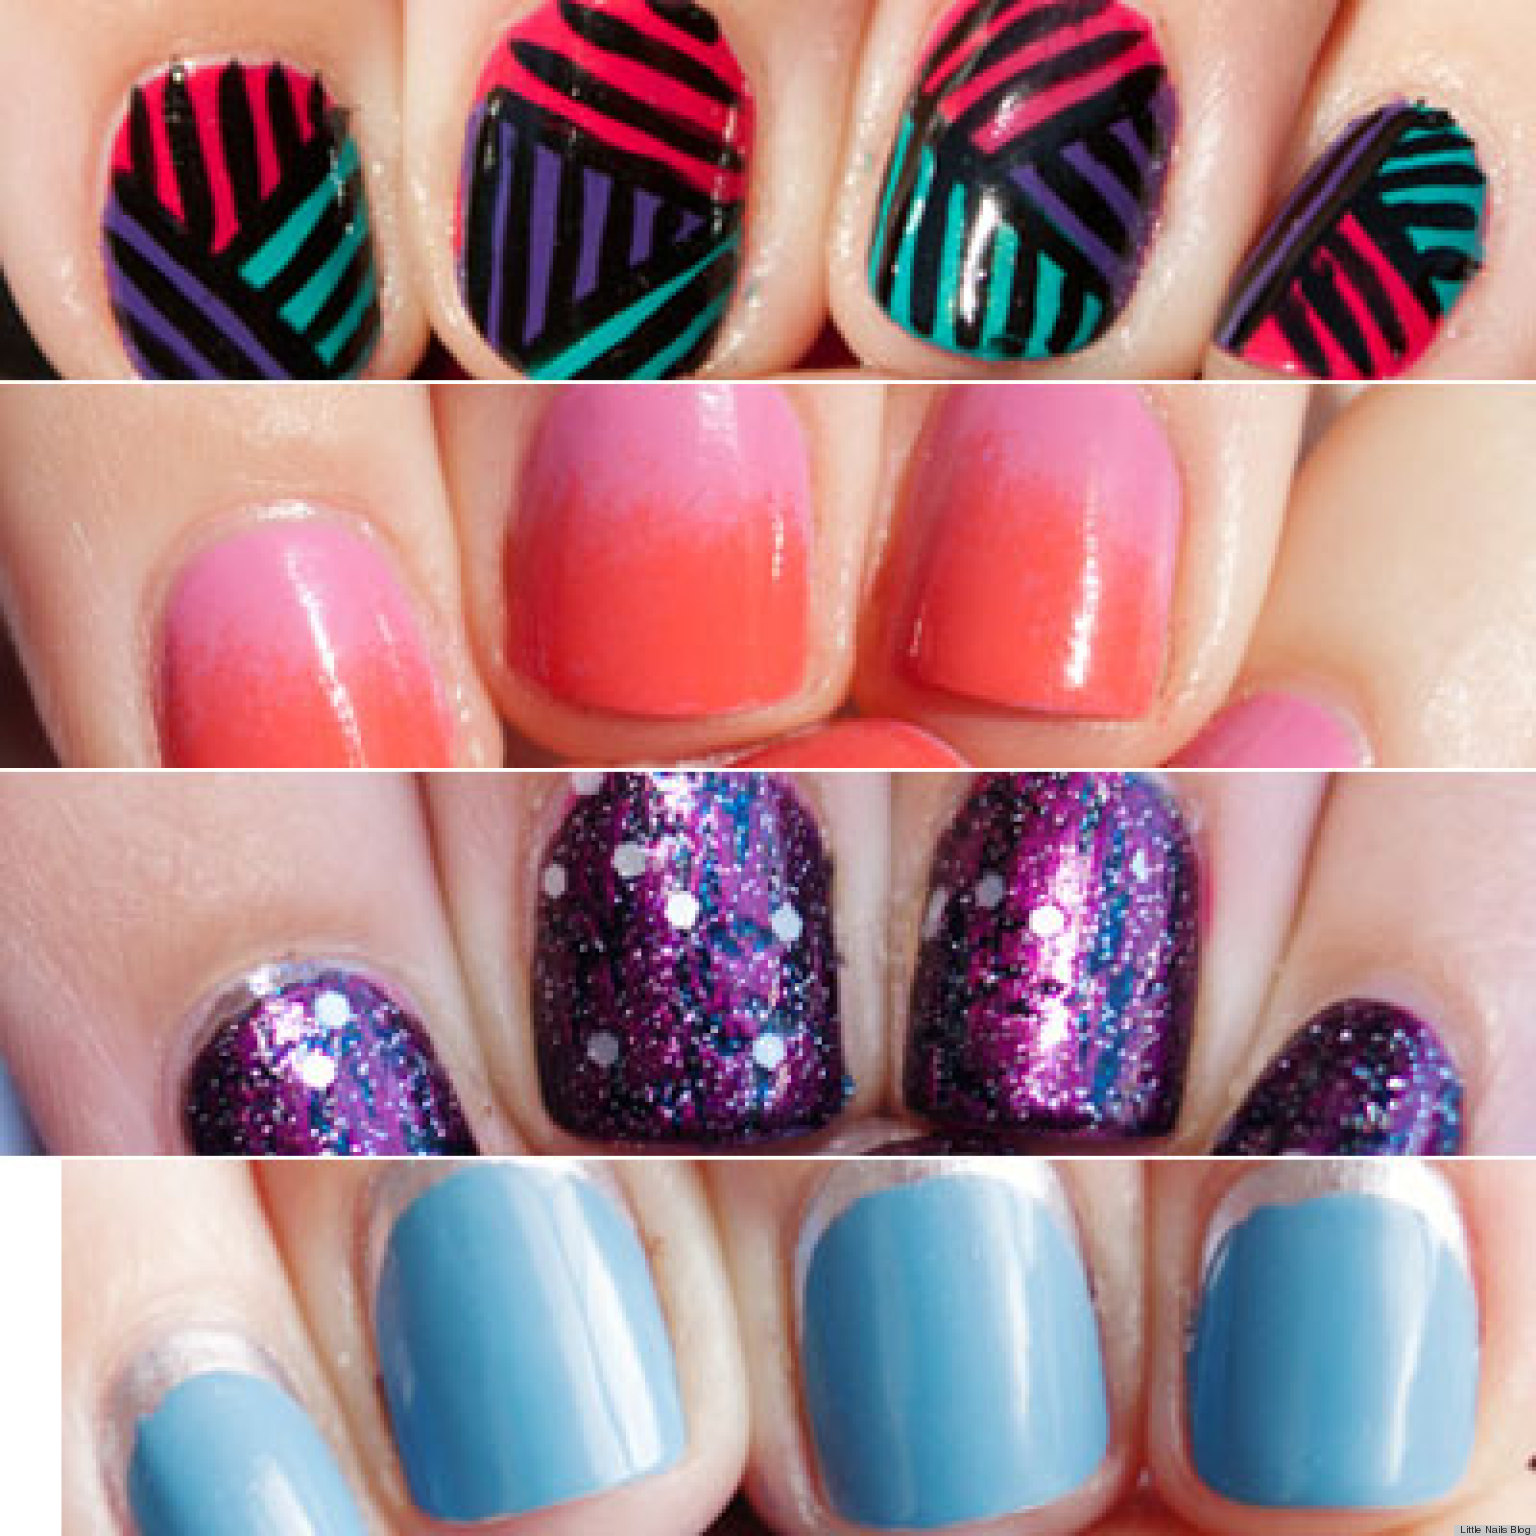 Do it yourself nail designs nail designs 2014 tumblr step Fashion style and nails facebook